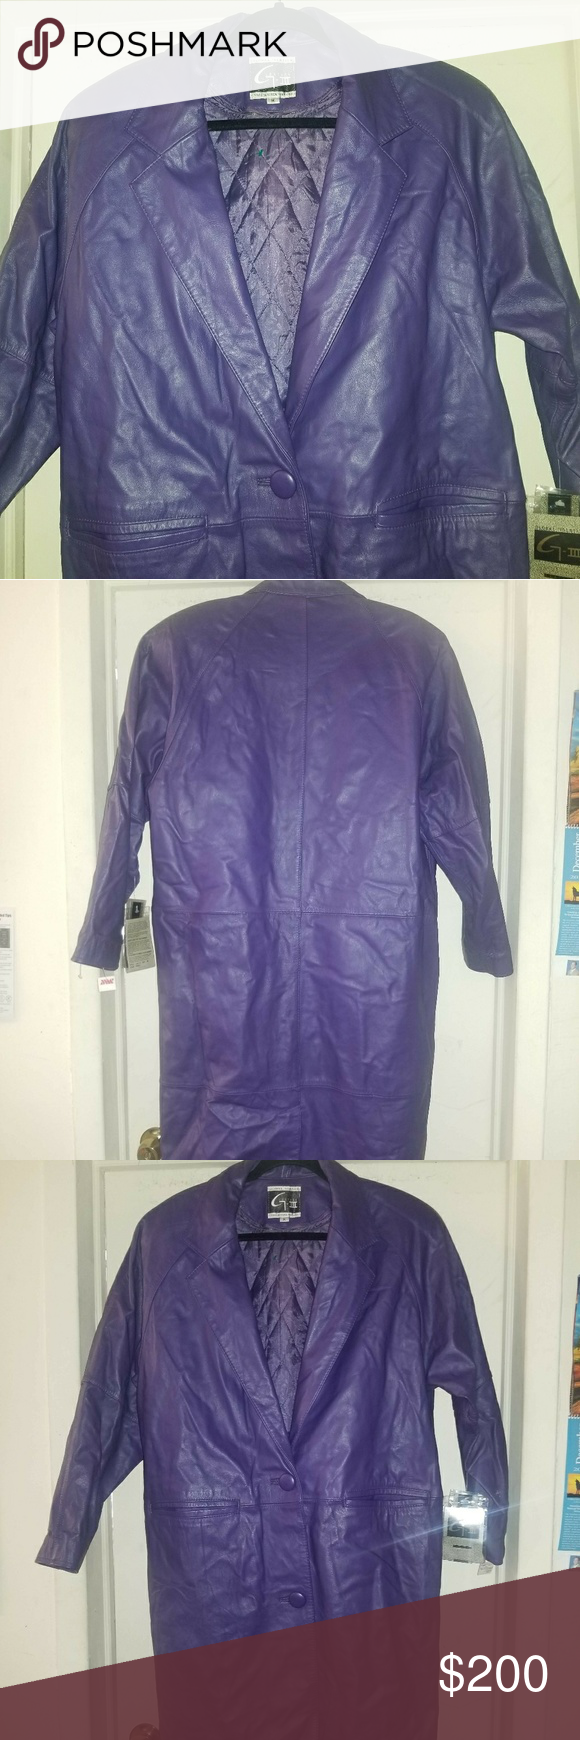 1dcd42f1cf VTG Global identity g-III purple leather Coat M This is a gorgeous vintage  global